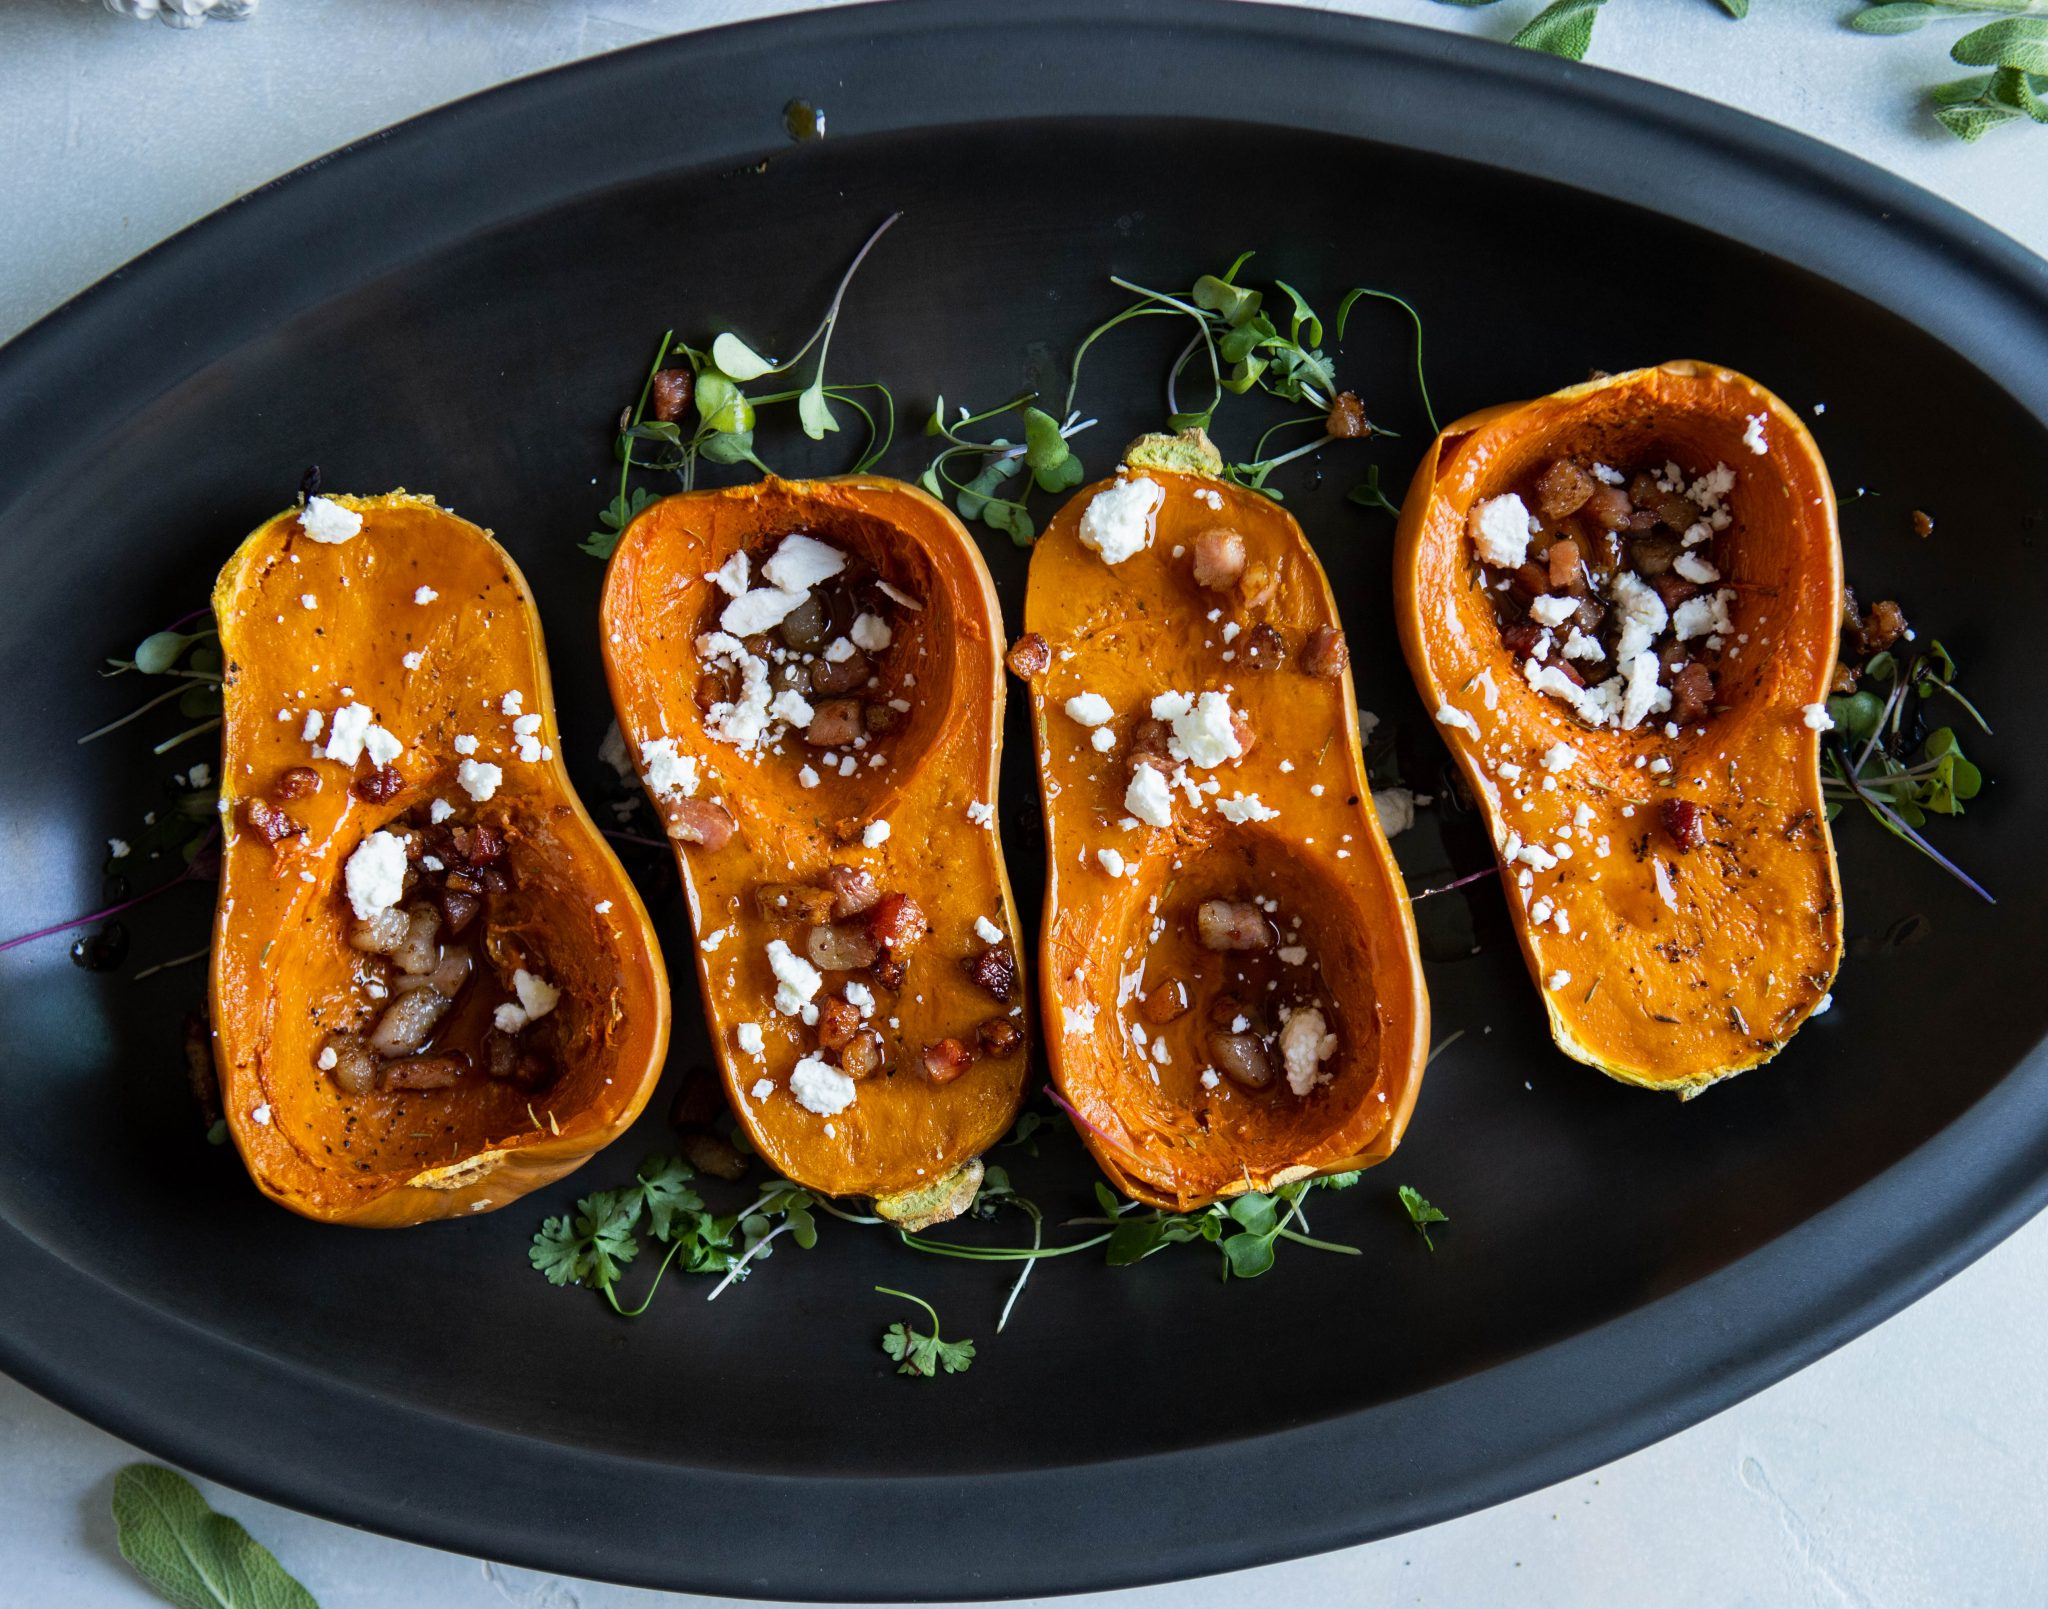 baked squash with pancetta and goat cheese sprinkled on top, in a black serving platter